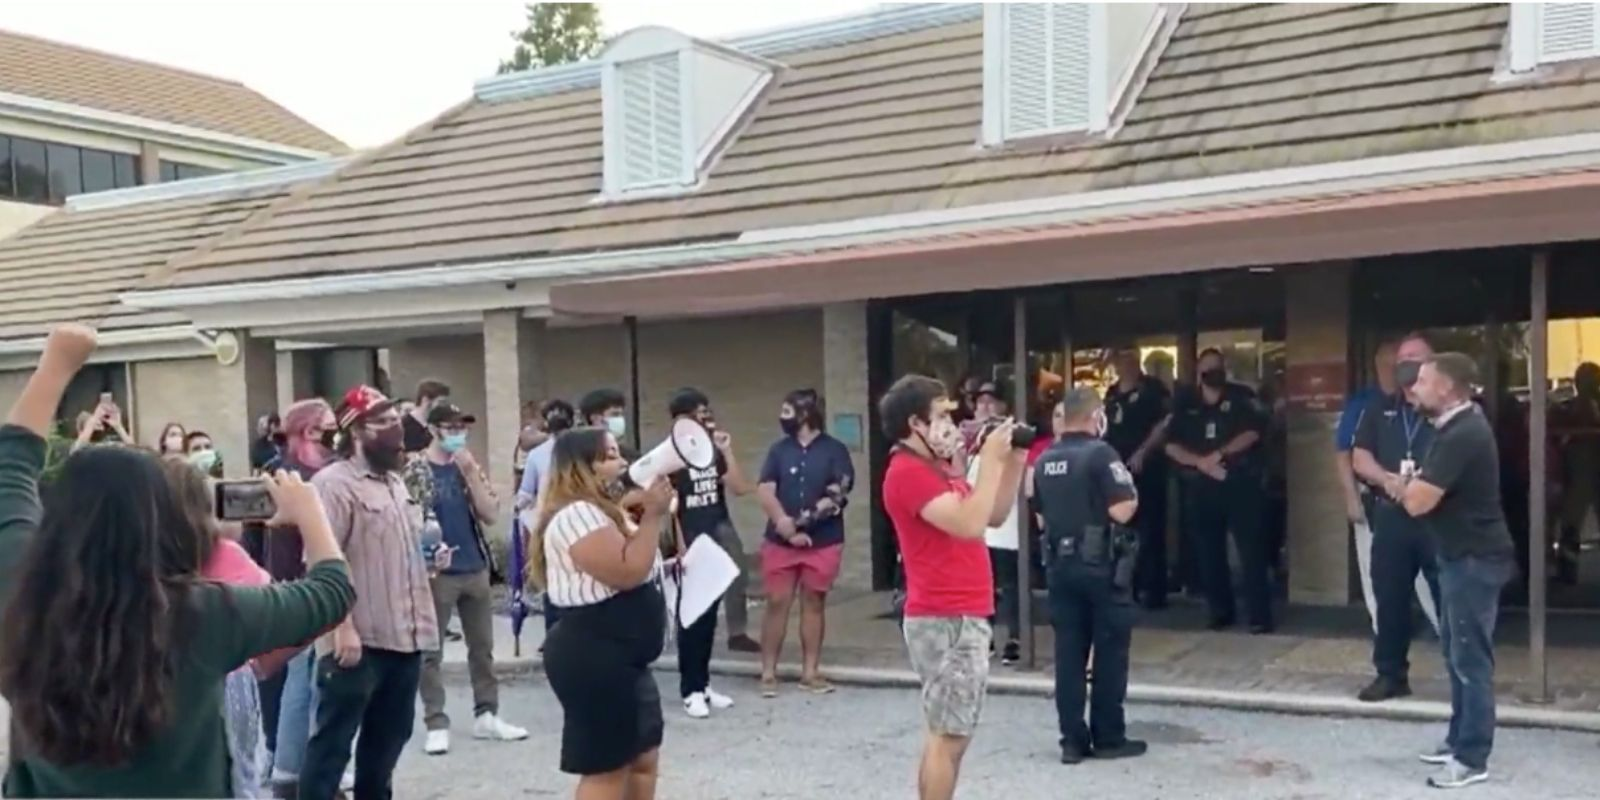 WATCH: Parents and BLM radicals face off in school parking lot over classroom indoctrination